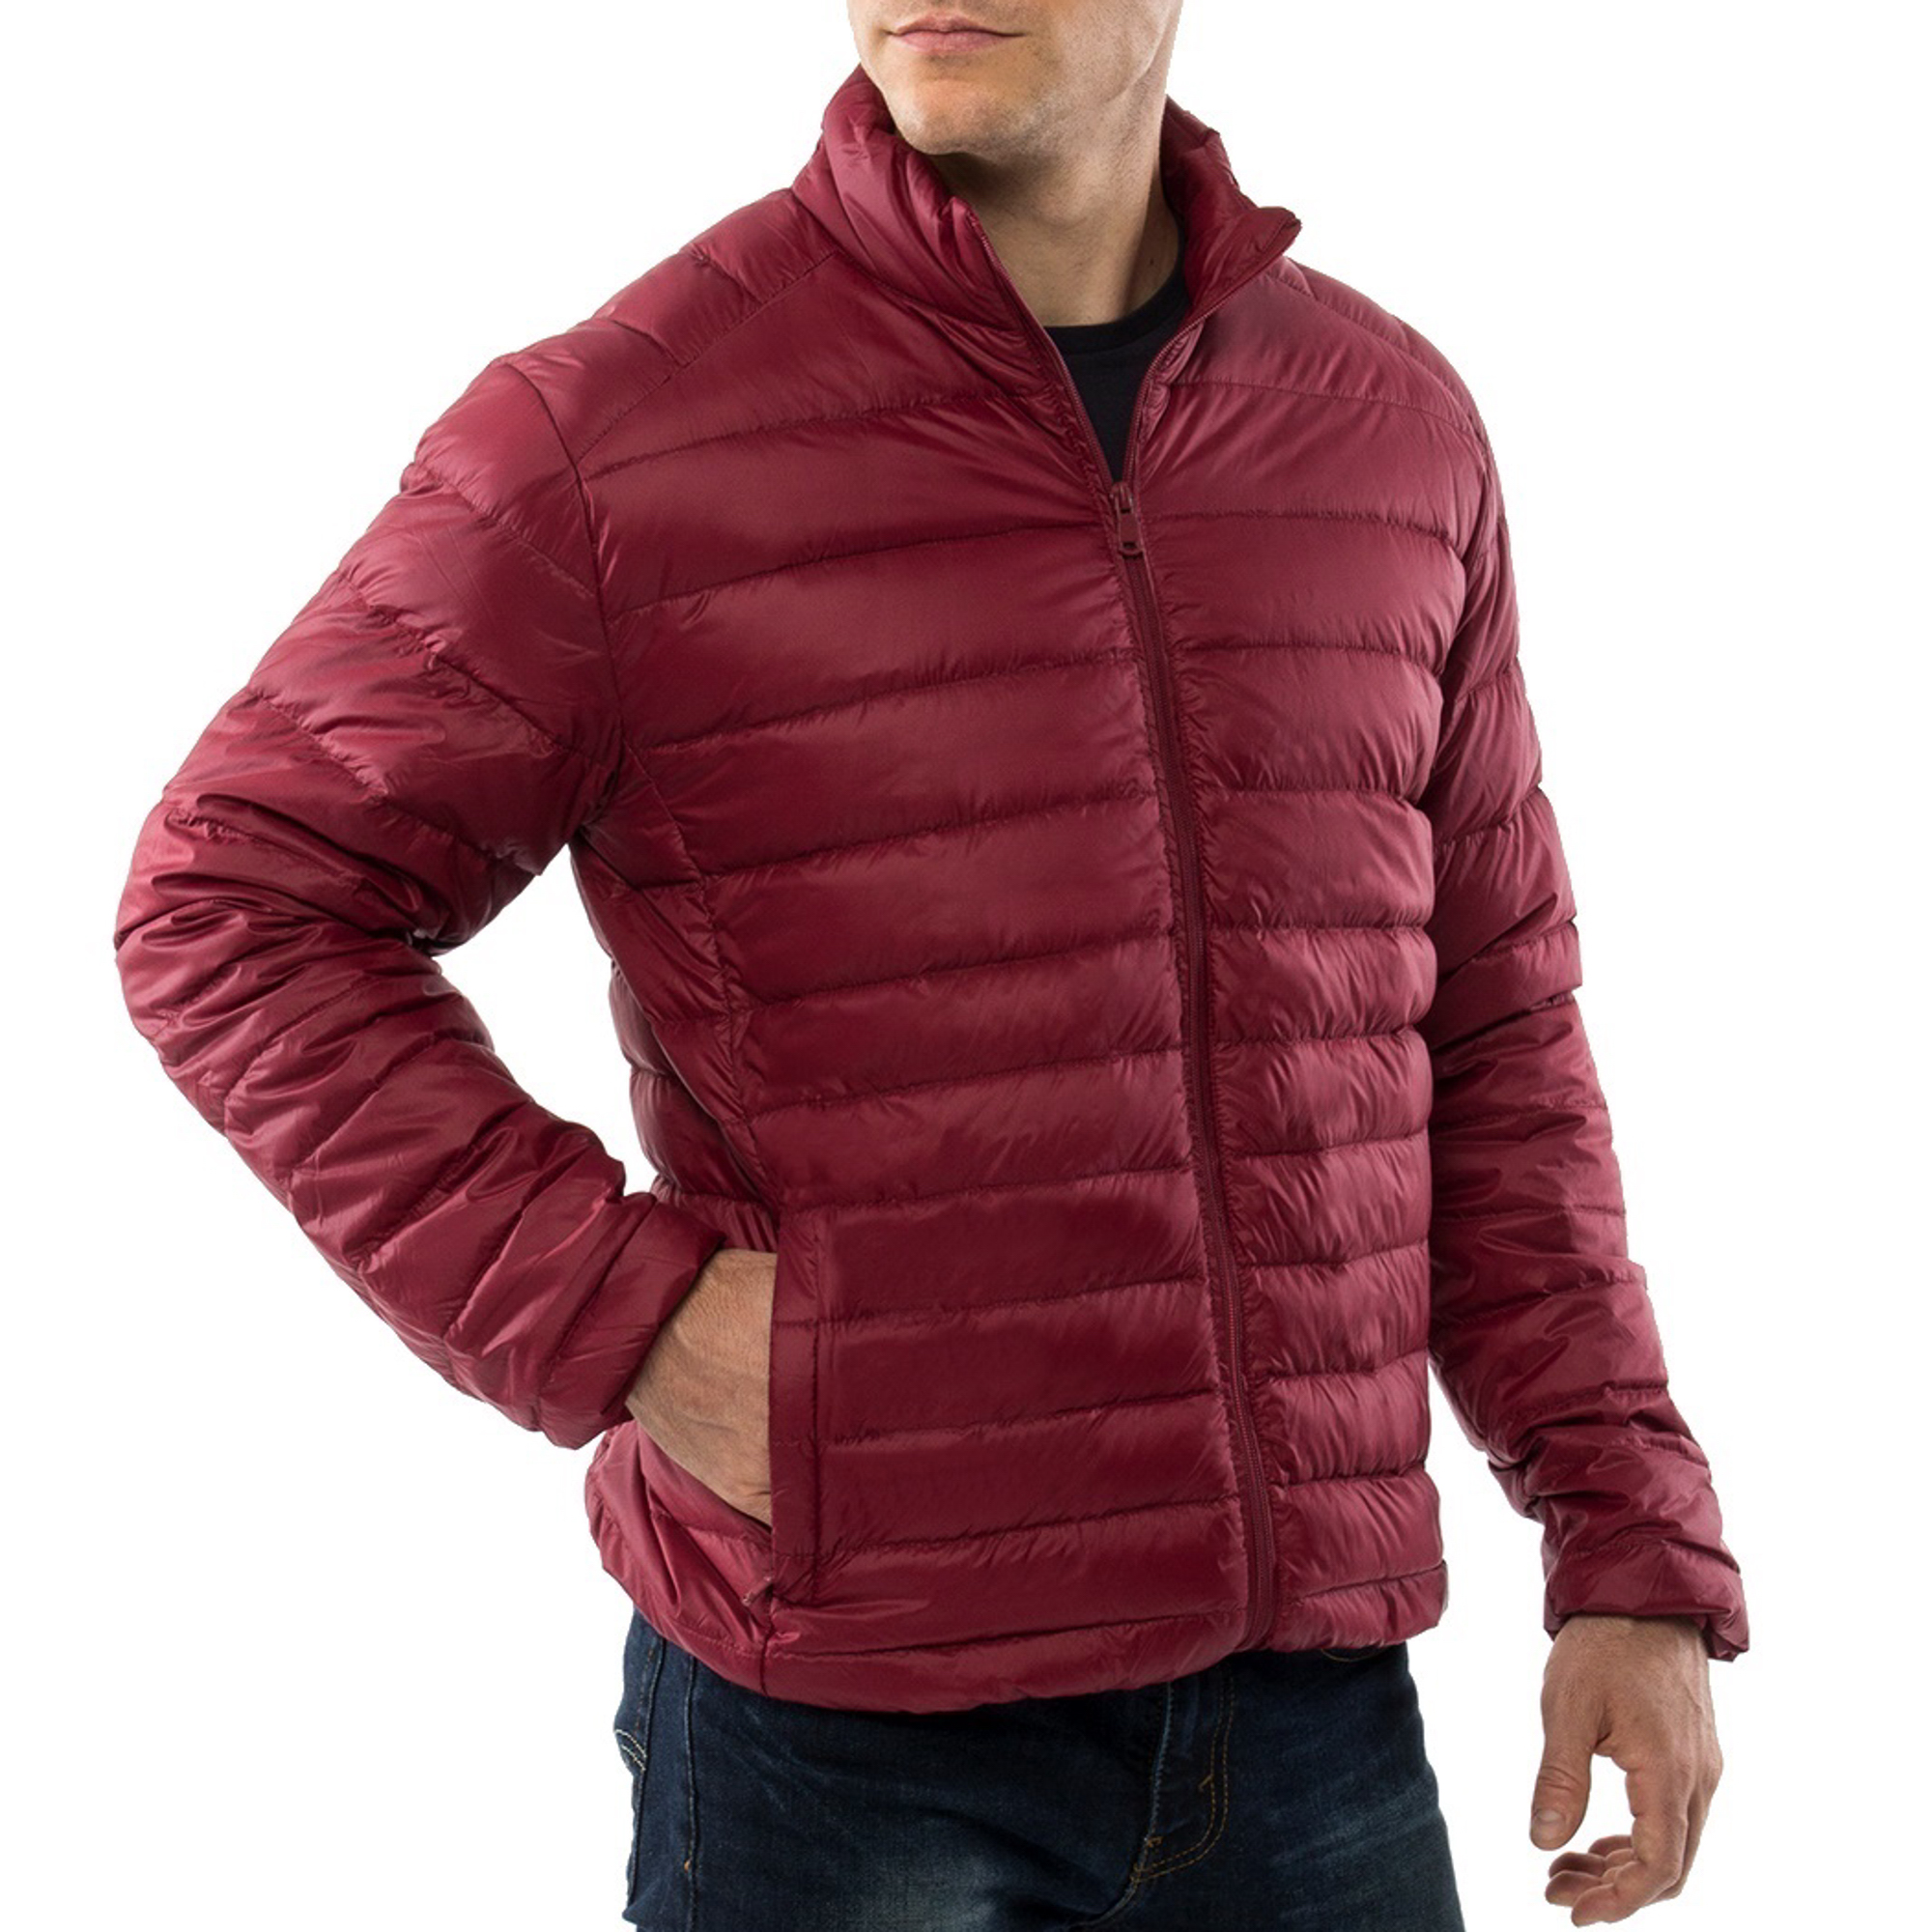 Alpine-Swiss-Niko-Packable-Light-Mens-Down-Jacket-Puffer-Bubble-Coat-Warm-Parka